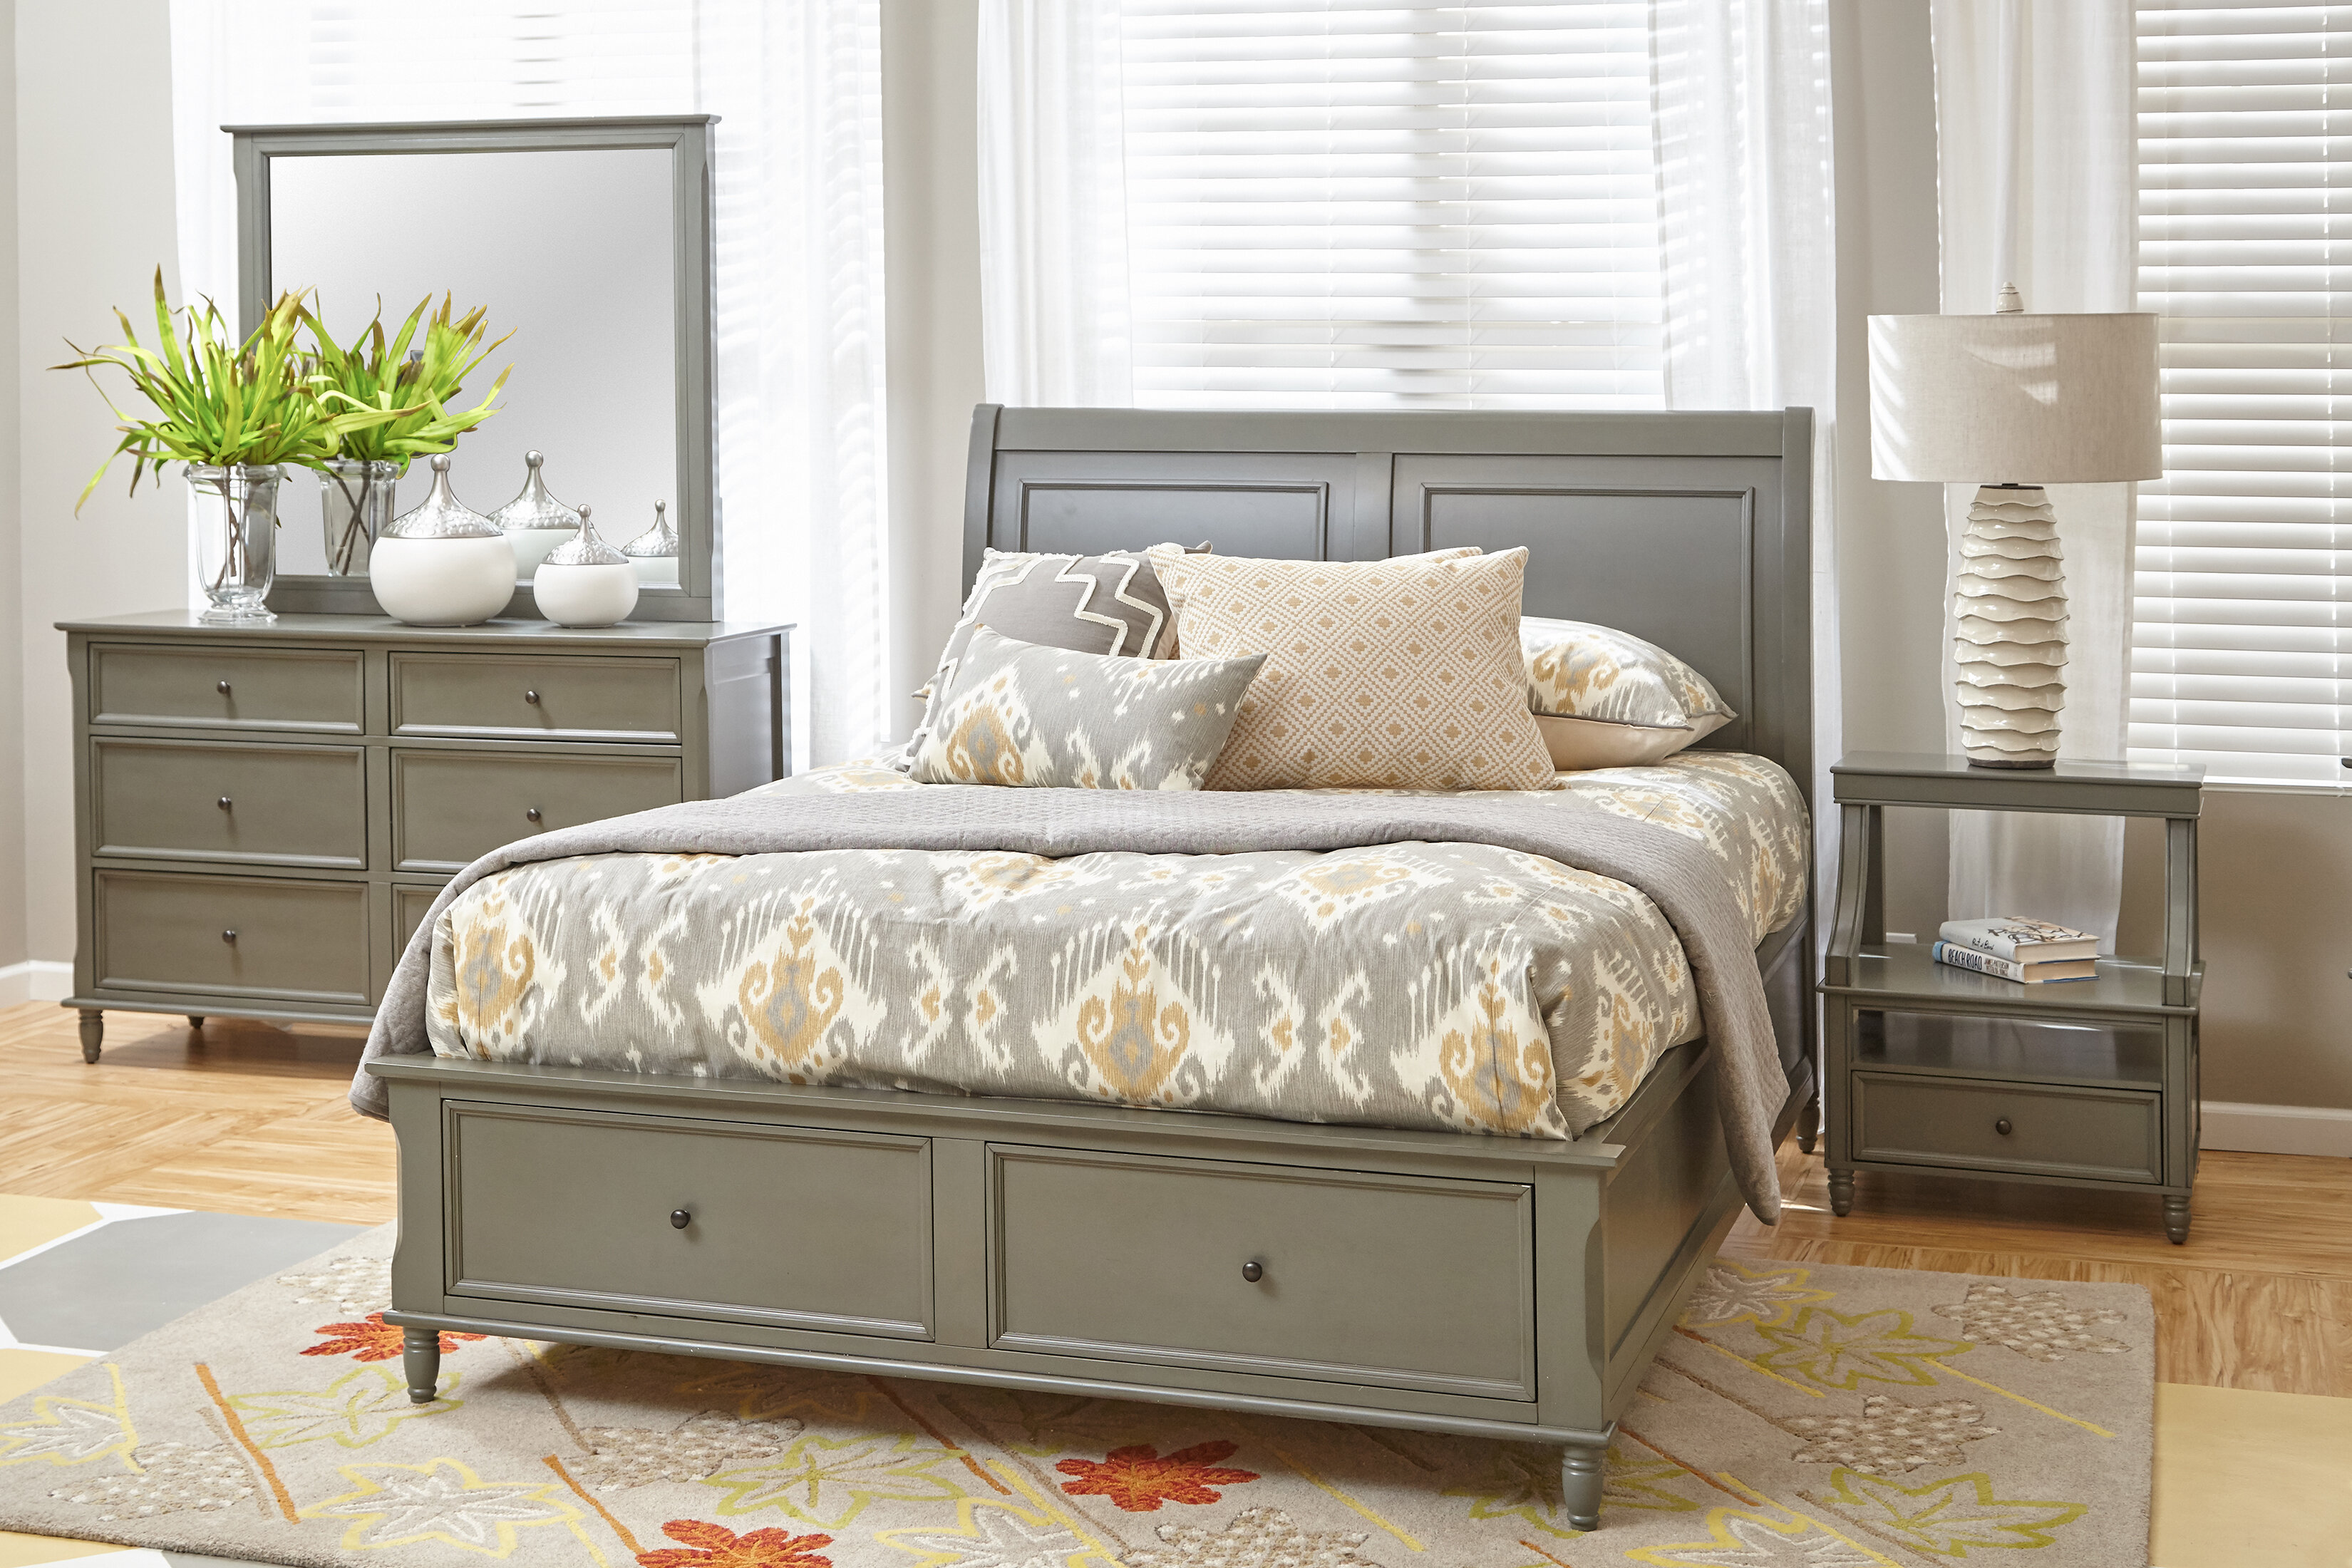 buy beds platform drawers full large size sets headboard king and with where frame of frames to storage bed bedroom queen